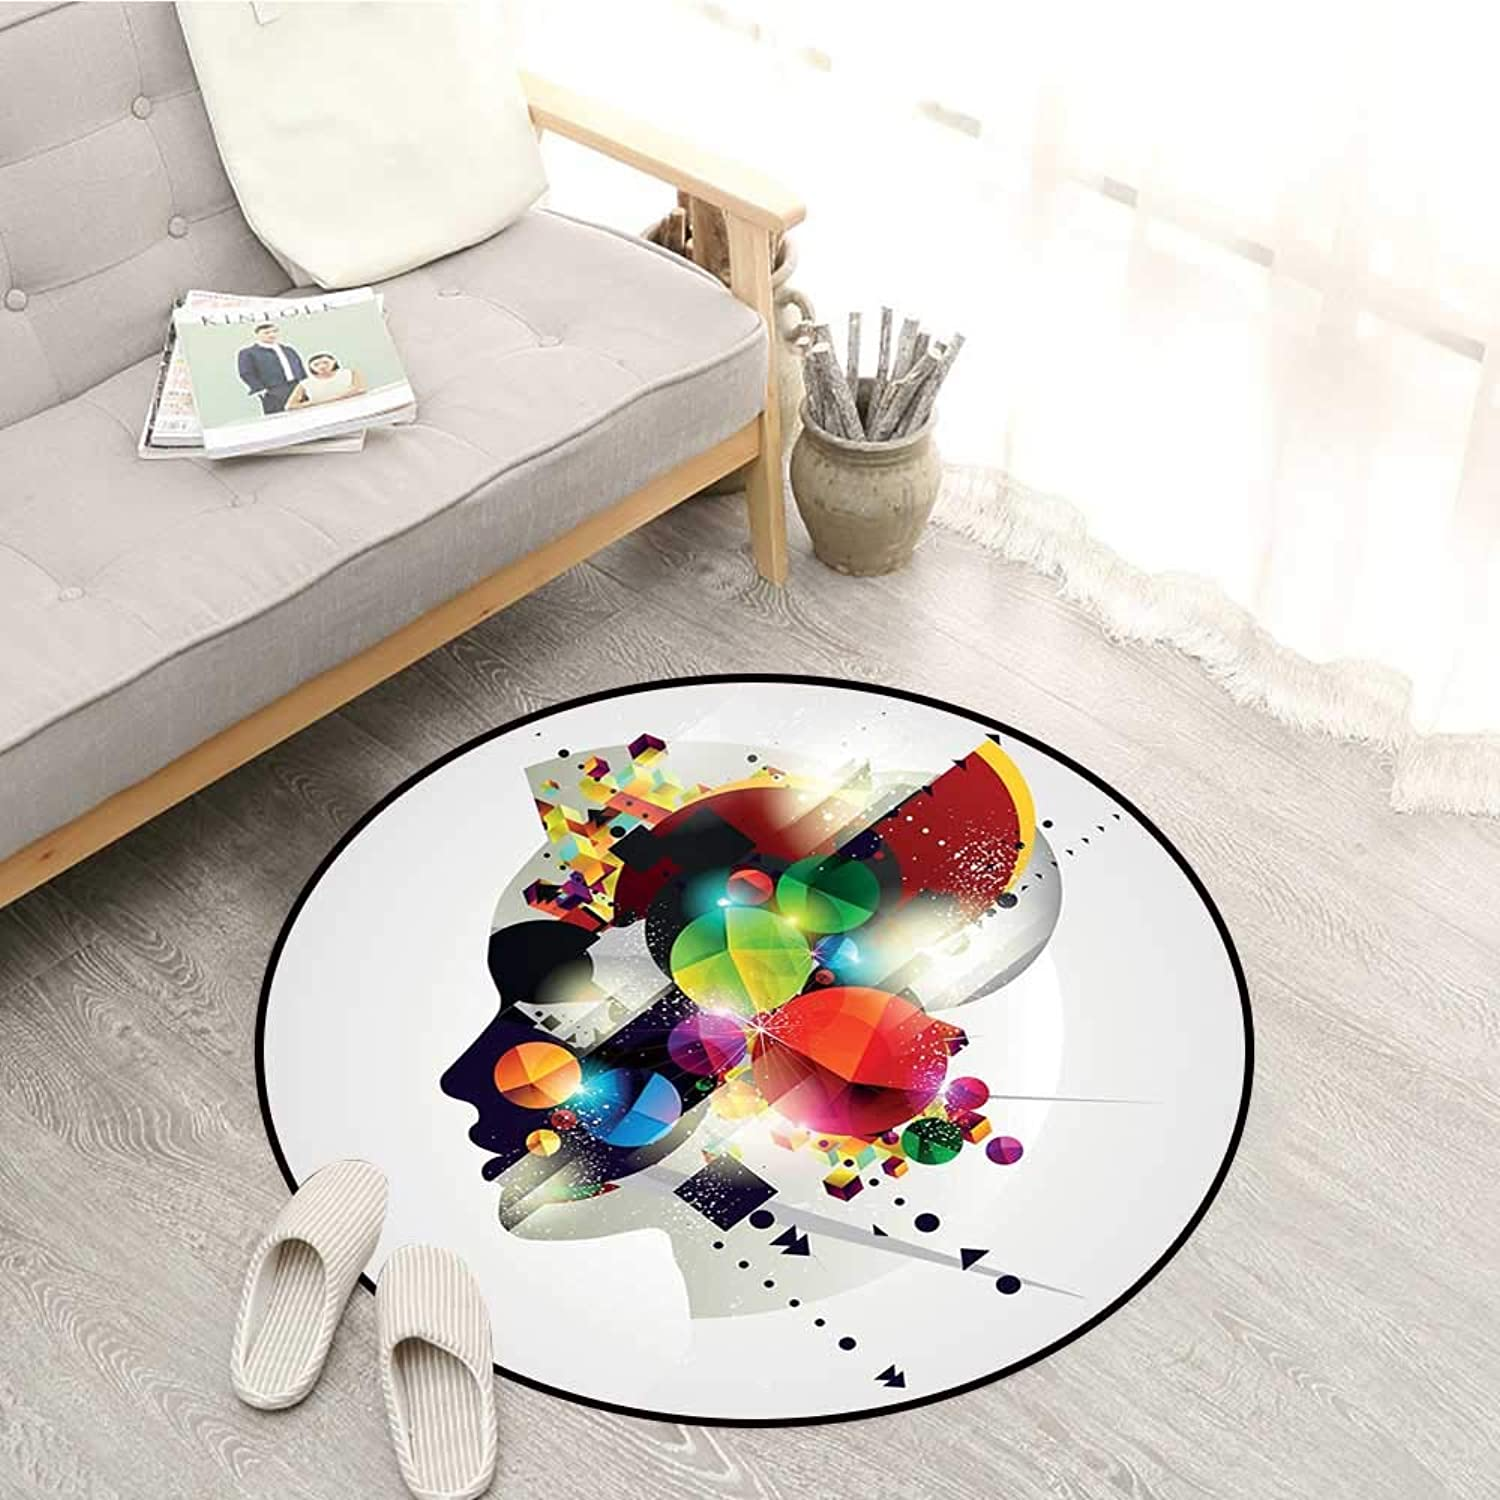 Abstract Carpets Modern Graphic Composition with colorful Geometric Digital Shapes and Girl Profile Sofa Coffee Table Mat 4'7  Multicolor